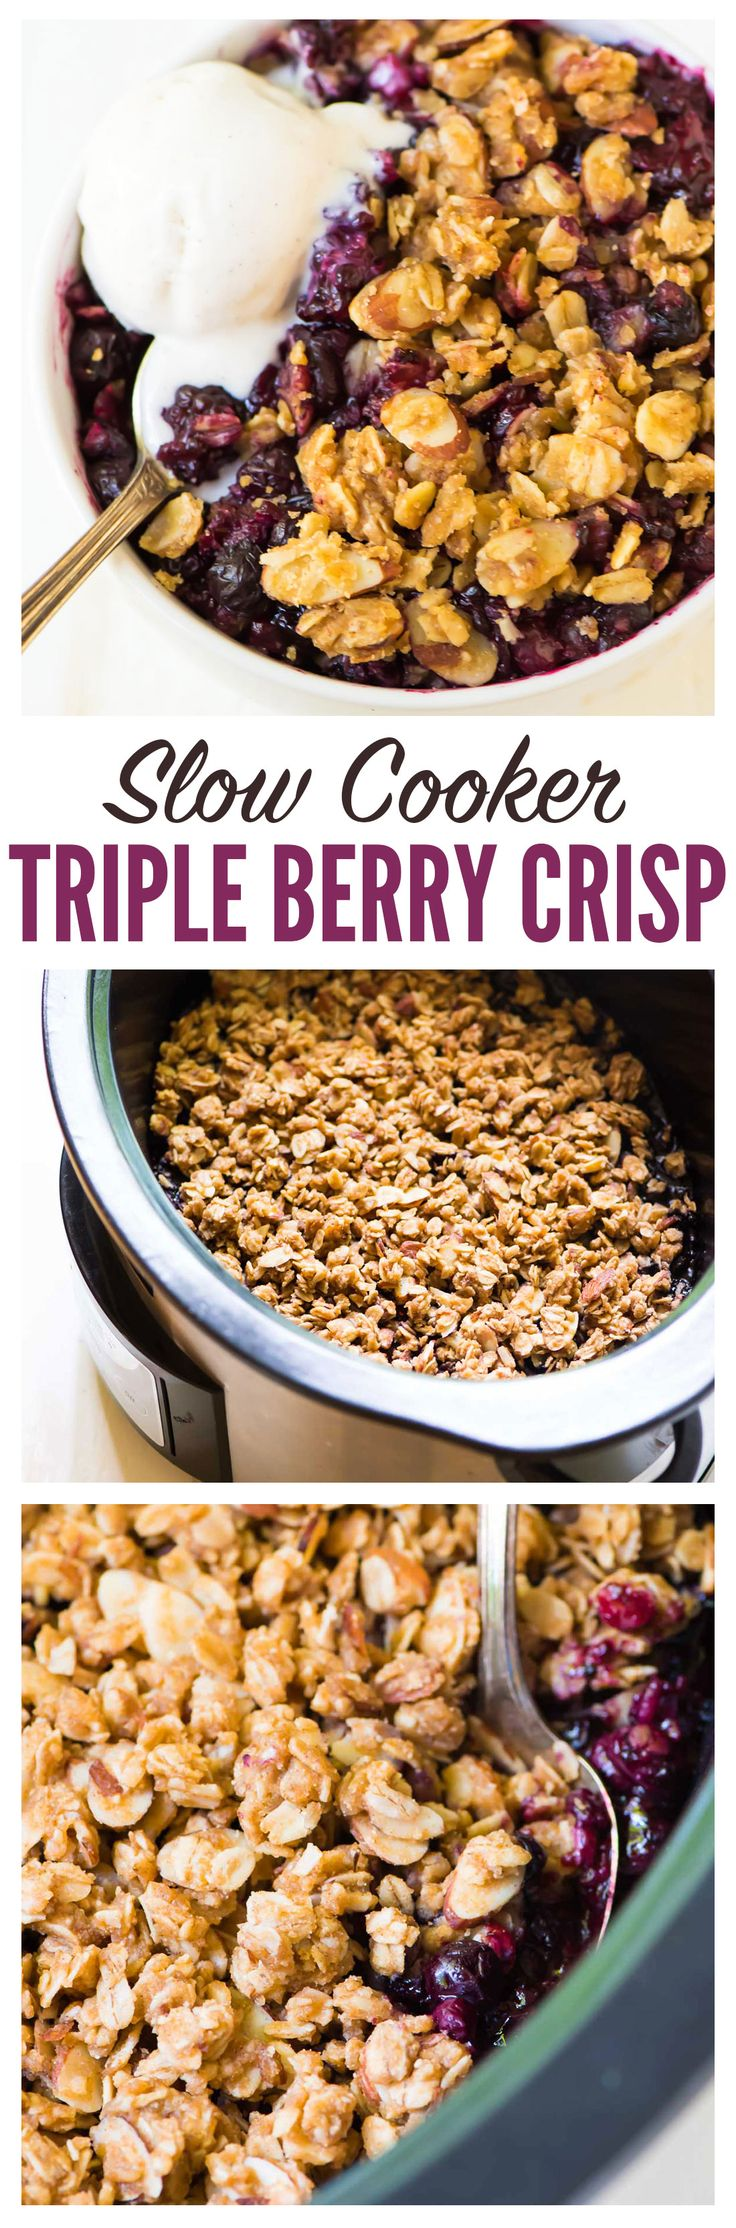 Slow Cooker Triple Berry Crisp – recipe works with fresh or frozen berries so you can enjoy summer fruit year round! Use any mix of blueberries, raspberries, or strawberries. Made with maple syrup and whole grains, this healthy fruit crisp cooks right in the crock pot and can be made gluten free or vegan. Enjoy it for dessert with whipped cream or for breakfast with yogurt. Recipe at wellplated.com   @wellplated